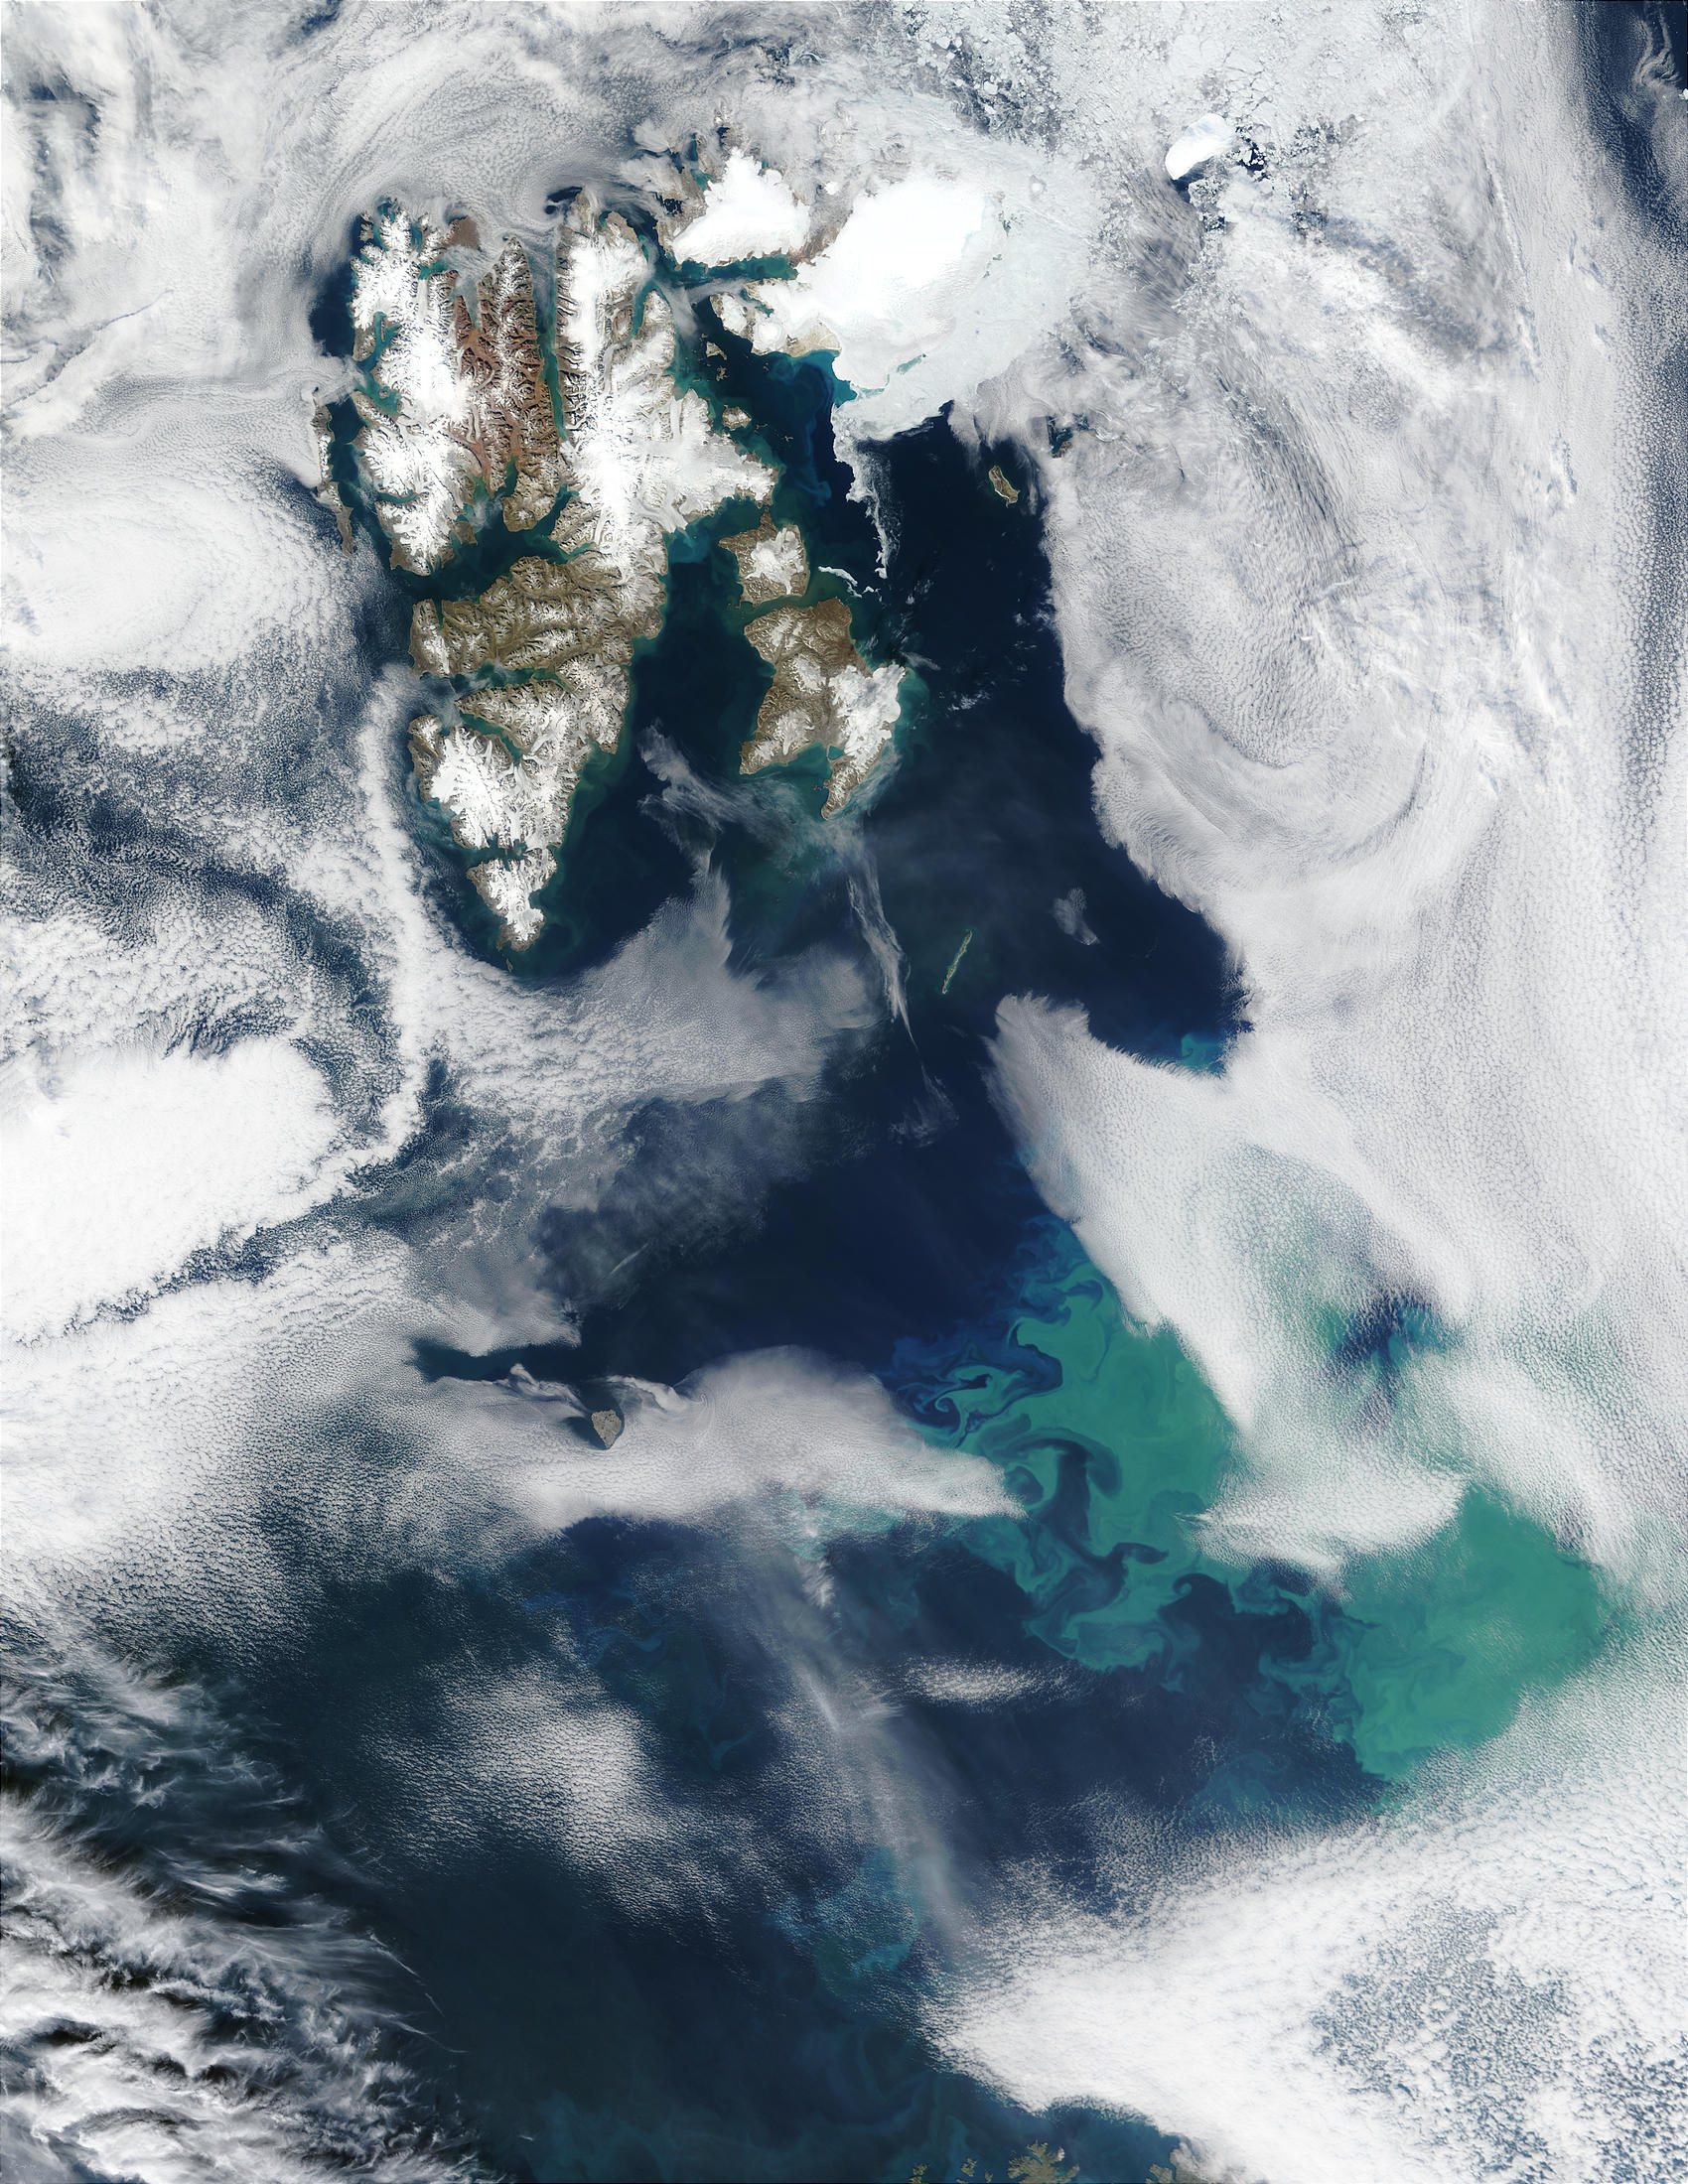 Phytoplankton bloom near Svalbard in Barents Sea - related image preview